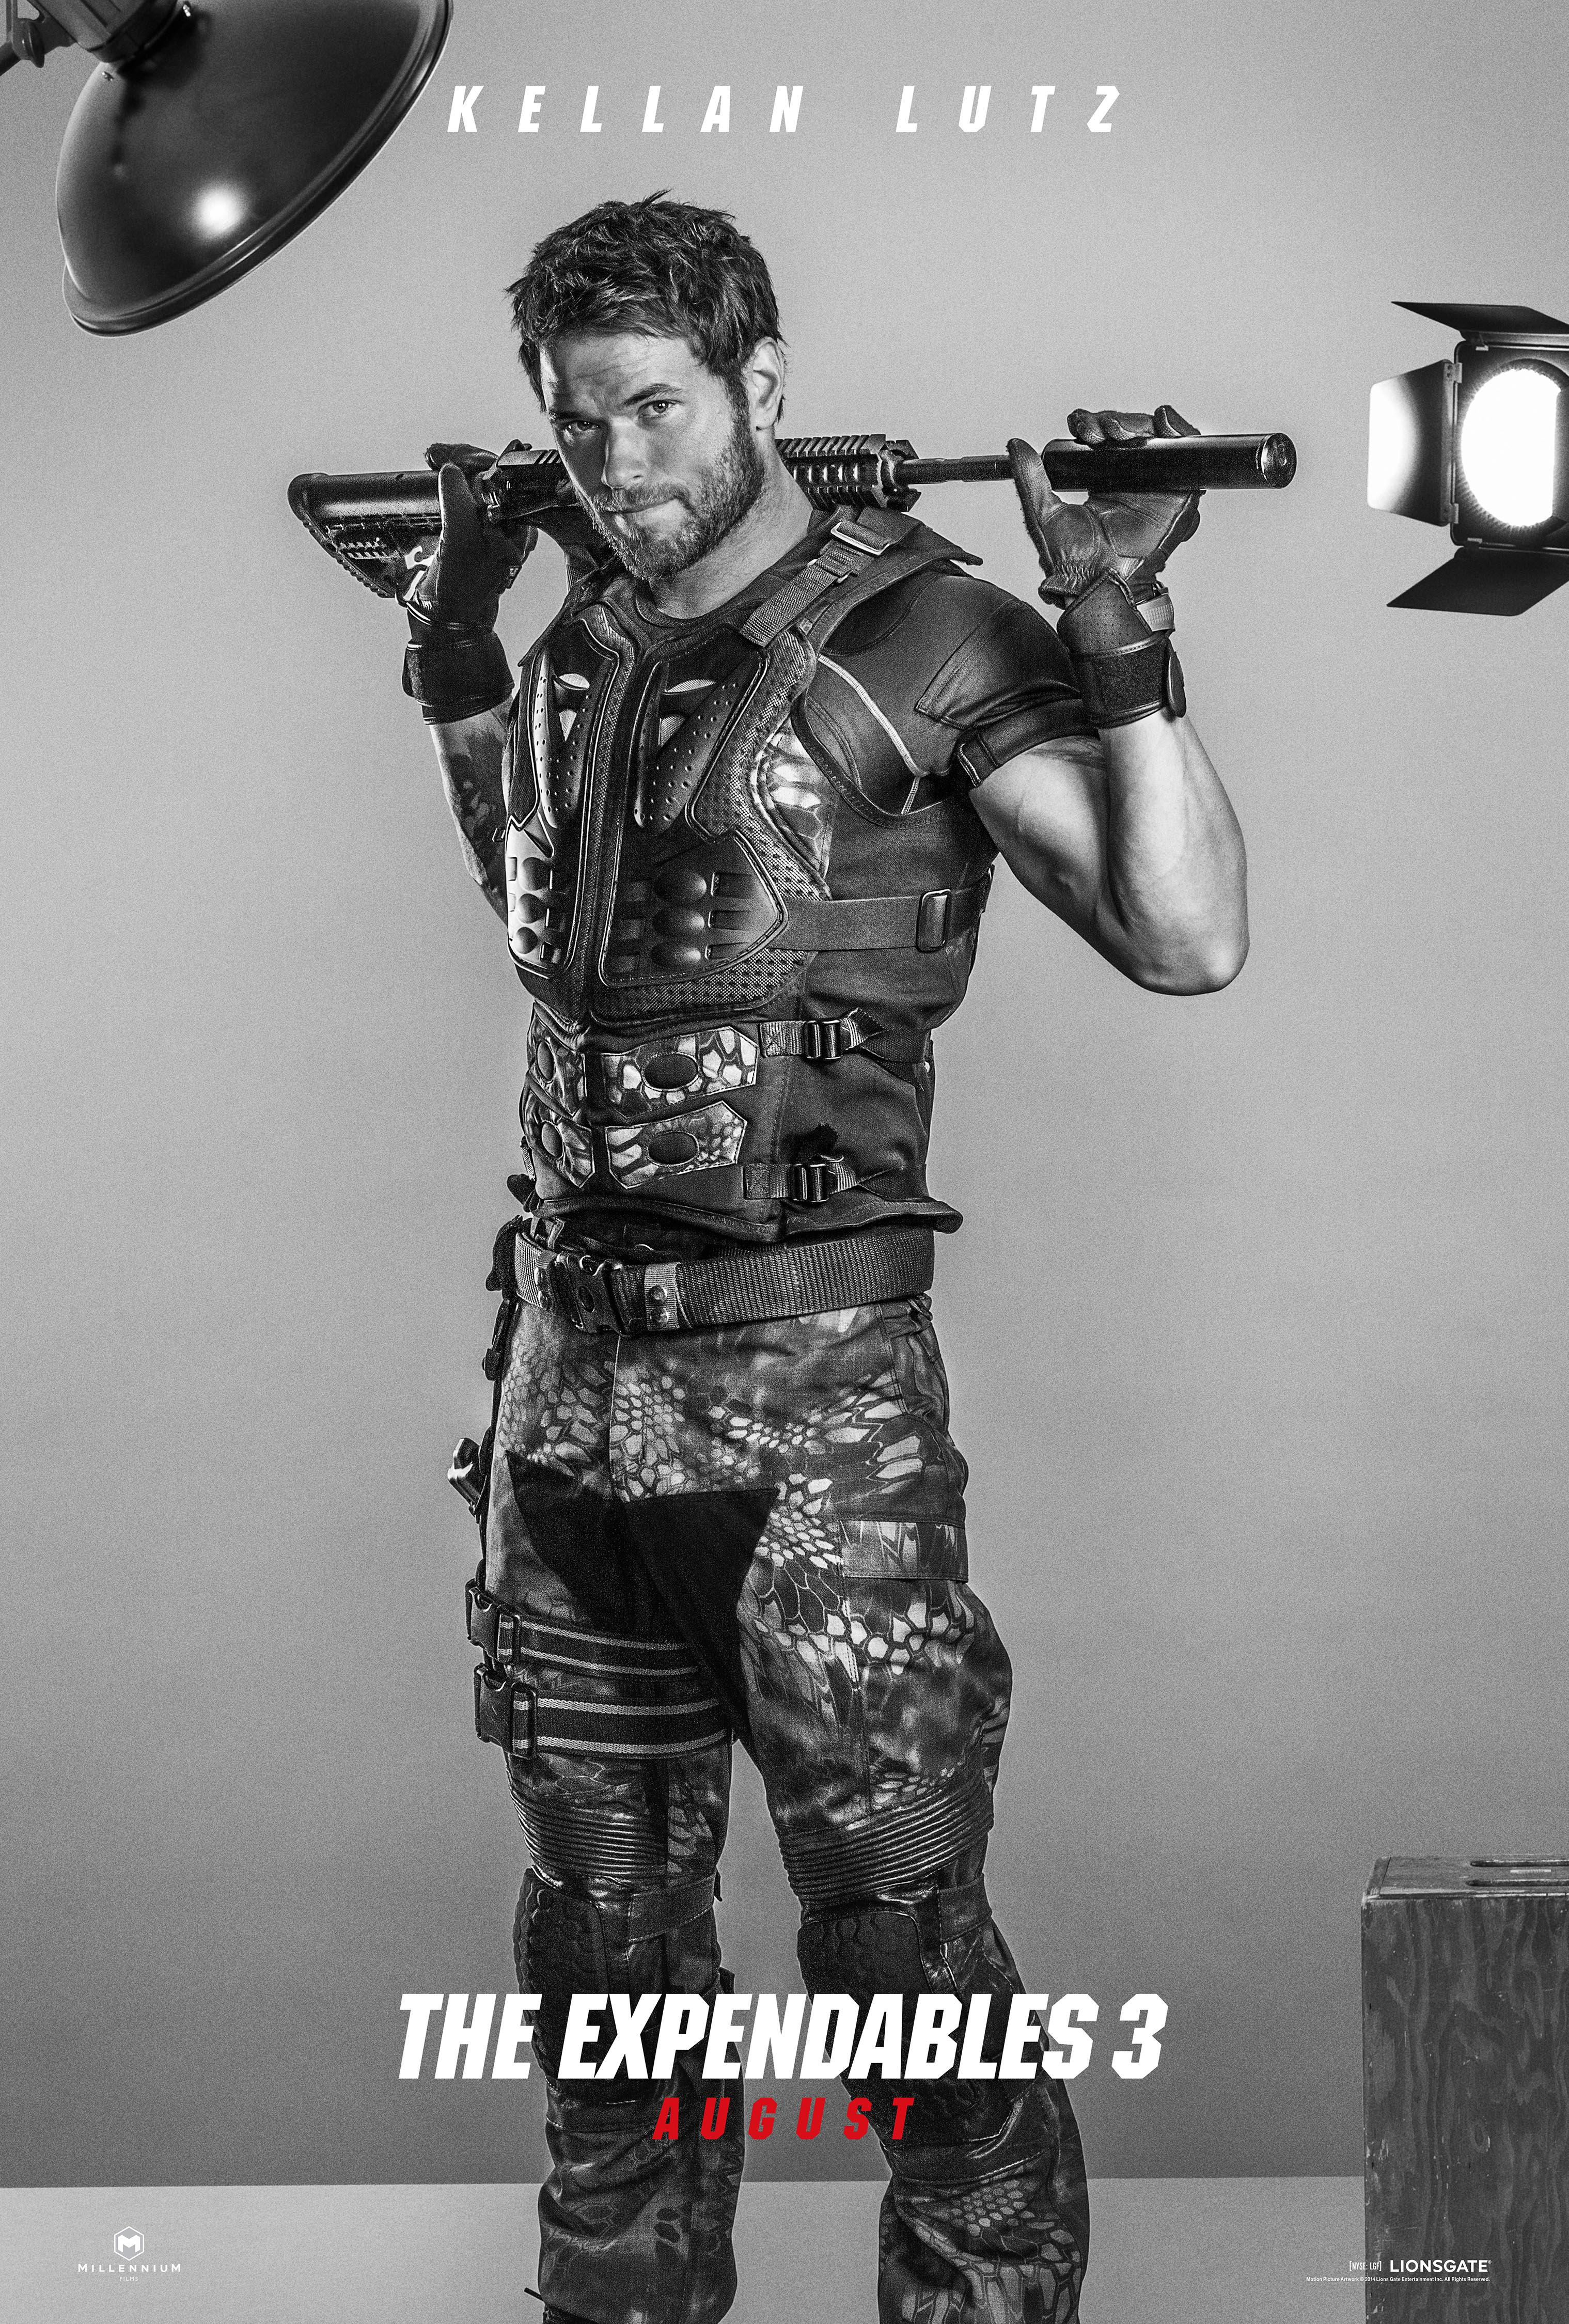 Kellan Lutz for The Expendables 3: Get the Look